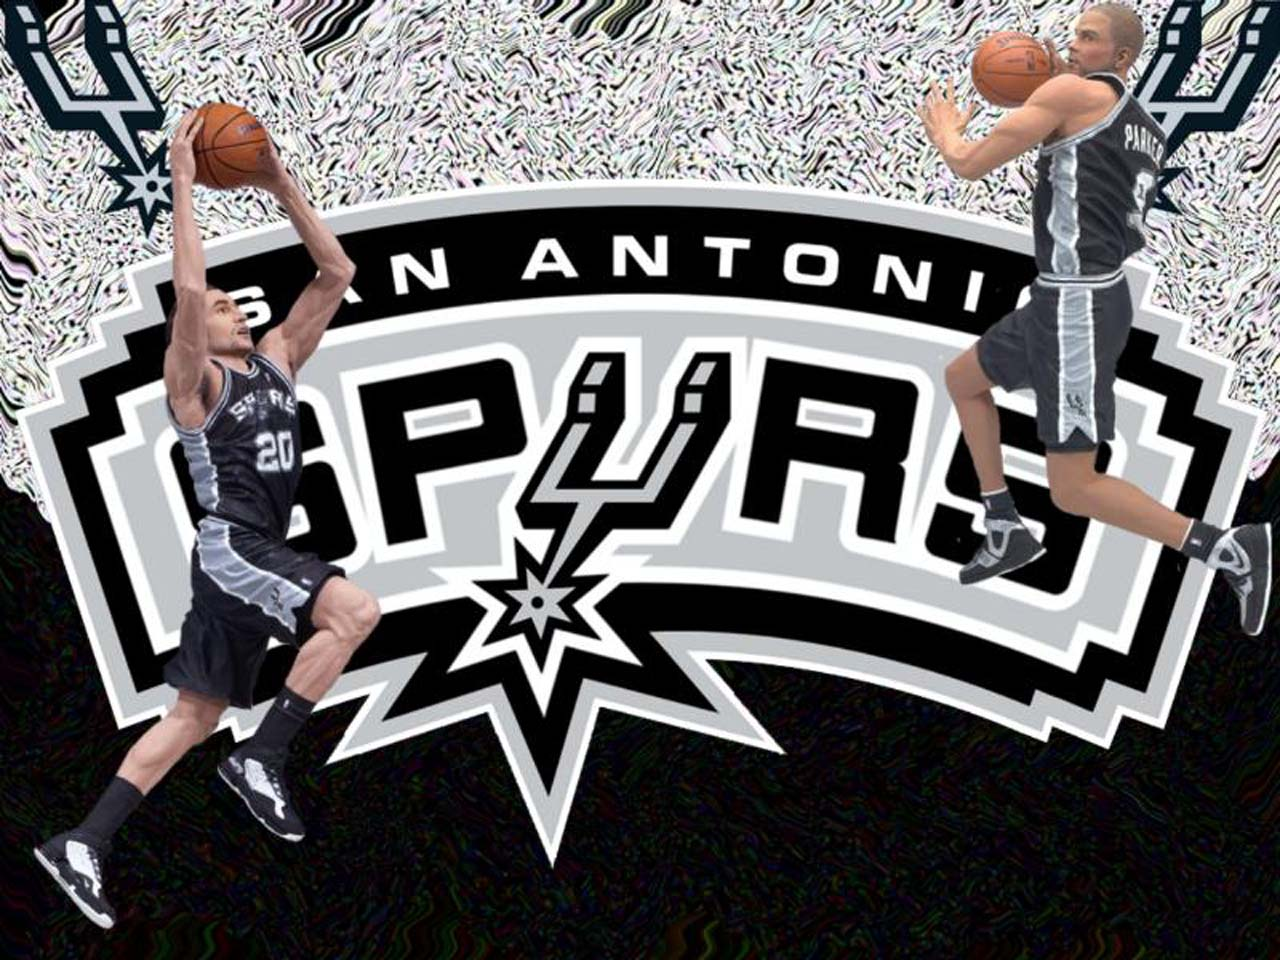 Download spurs wallpaper free download gallery spurs wallpaper free download voltagebd Choice Image